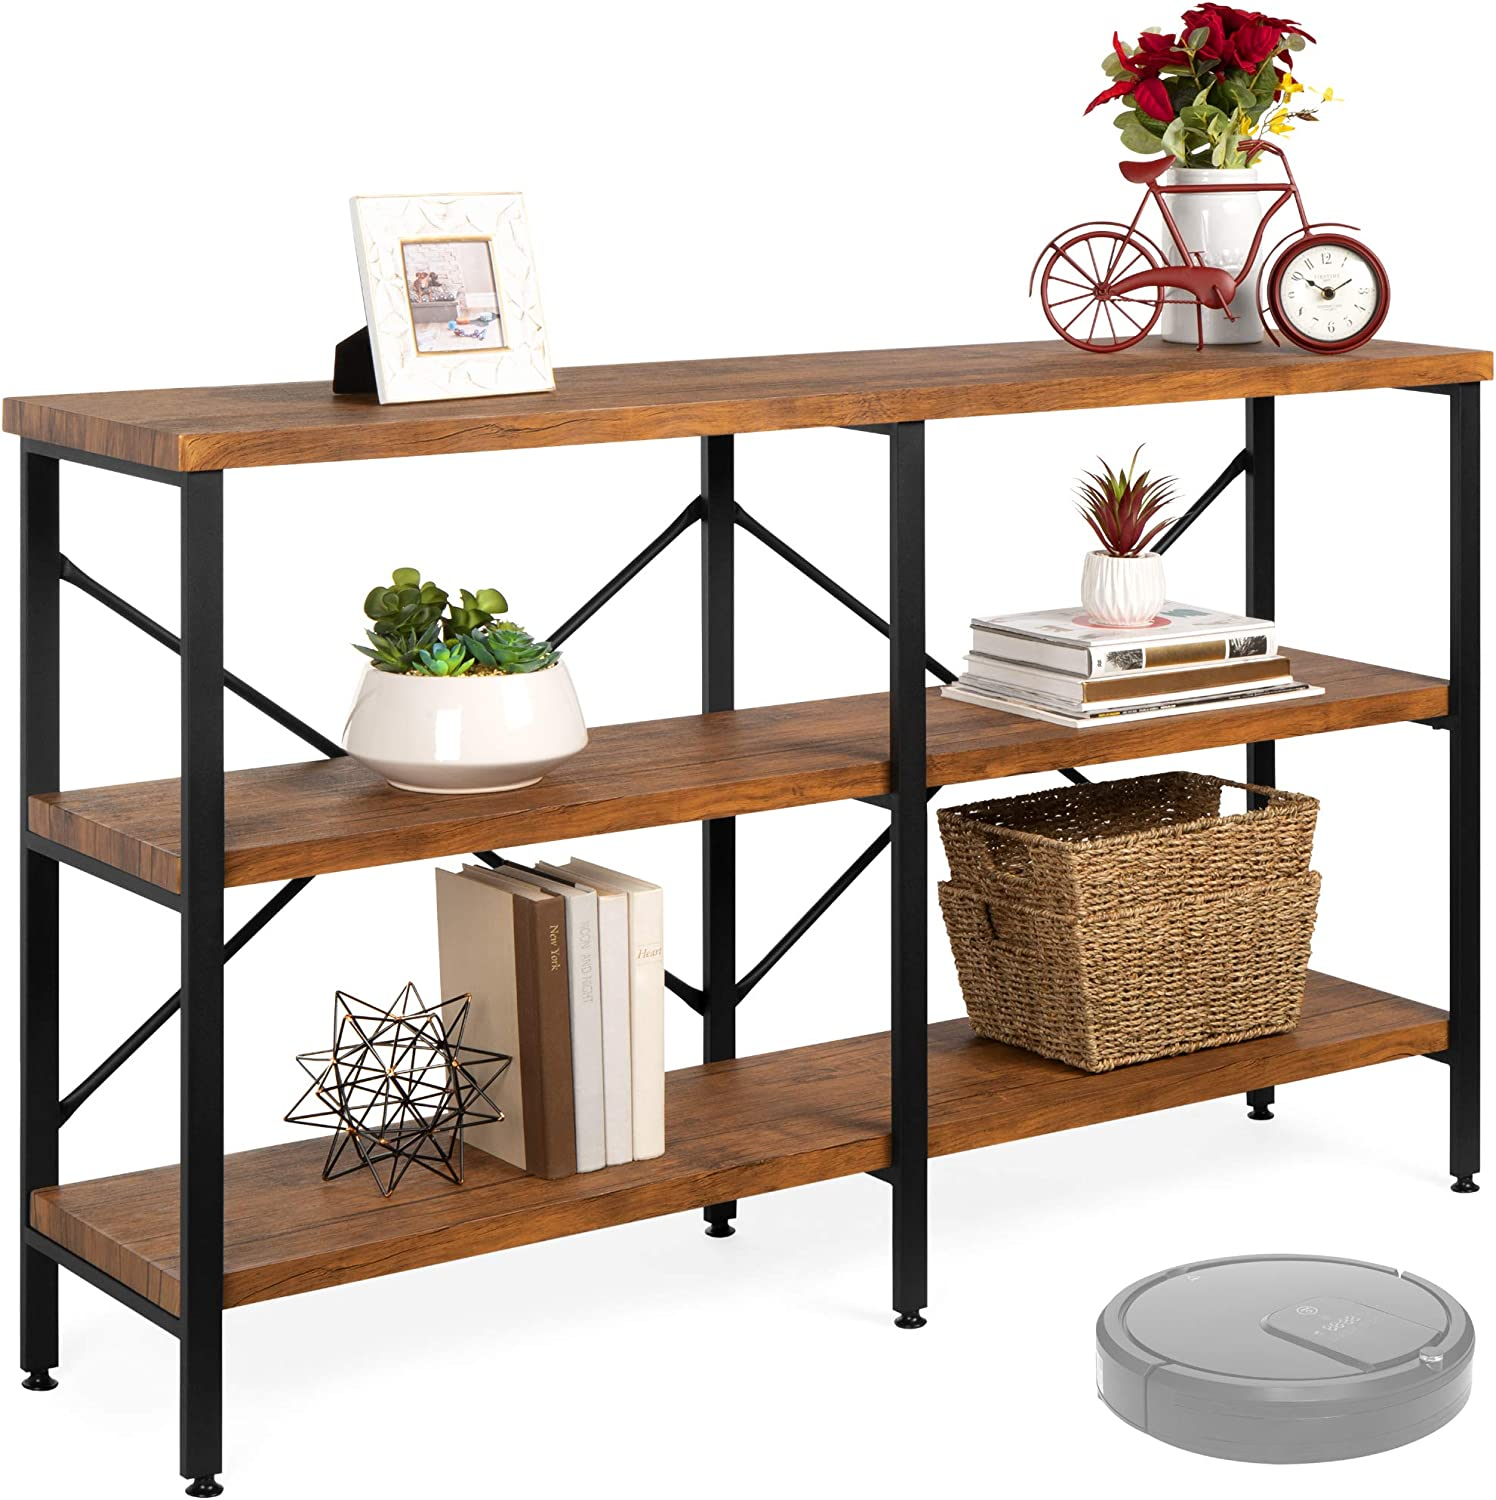 Best Choice Products 55in Rustic 3 Tier Console Sofa Table Industrial Foyer Table For Living Room Entry Way Hallway W Eva Non Scratch Feet Steel Frame Brown Furniture Decor